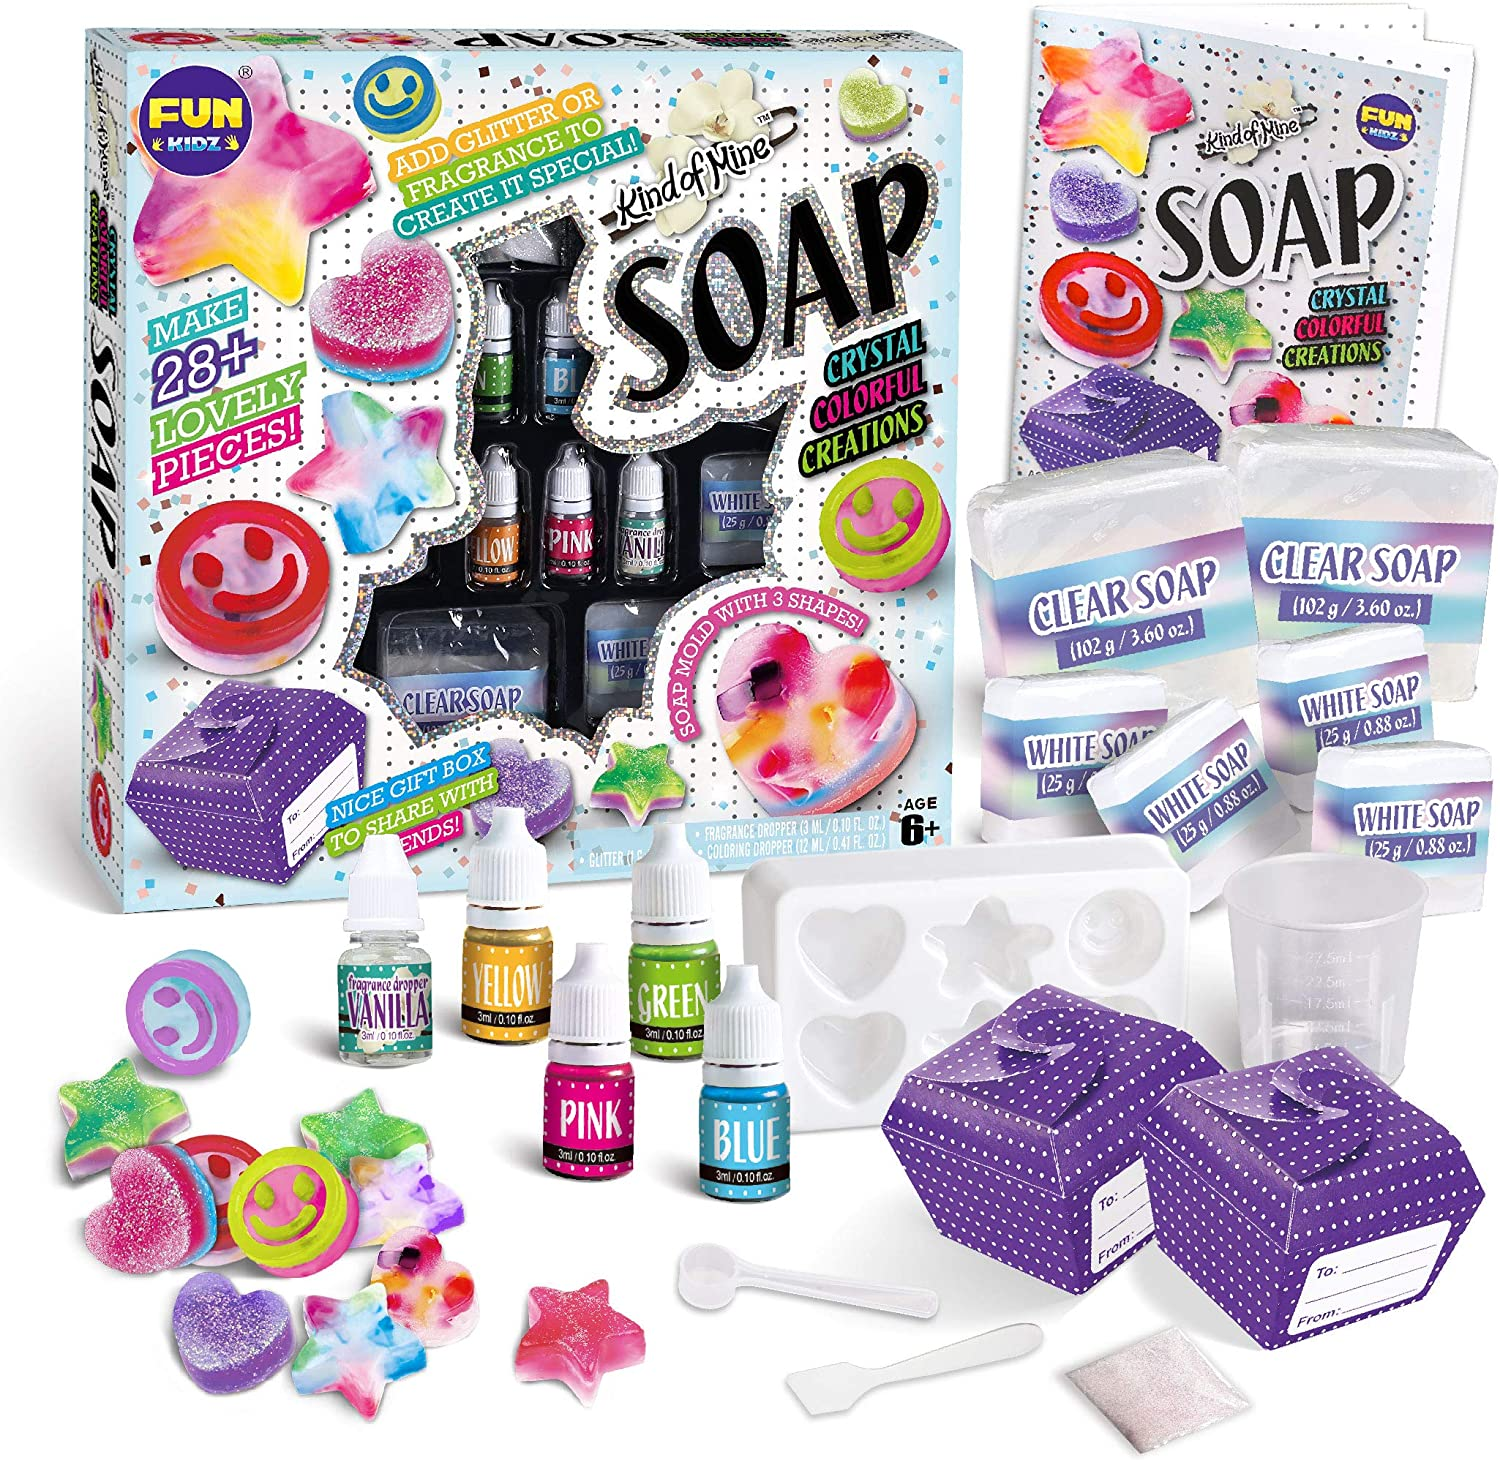 Make Your Own Soap Childrens Kids Kit Scent Glitter Creative Learning 3 x SCENTS